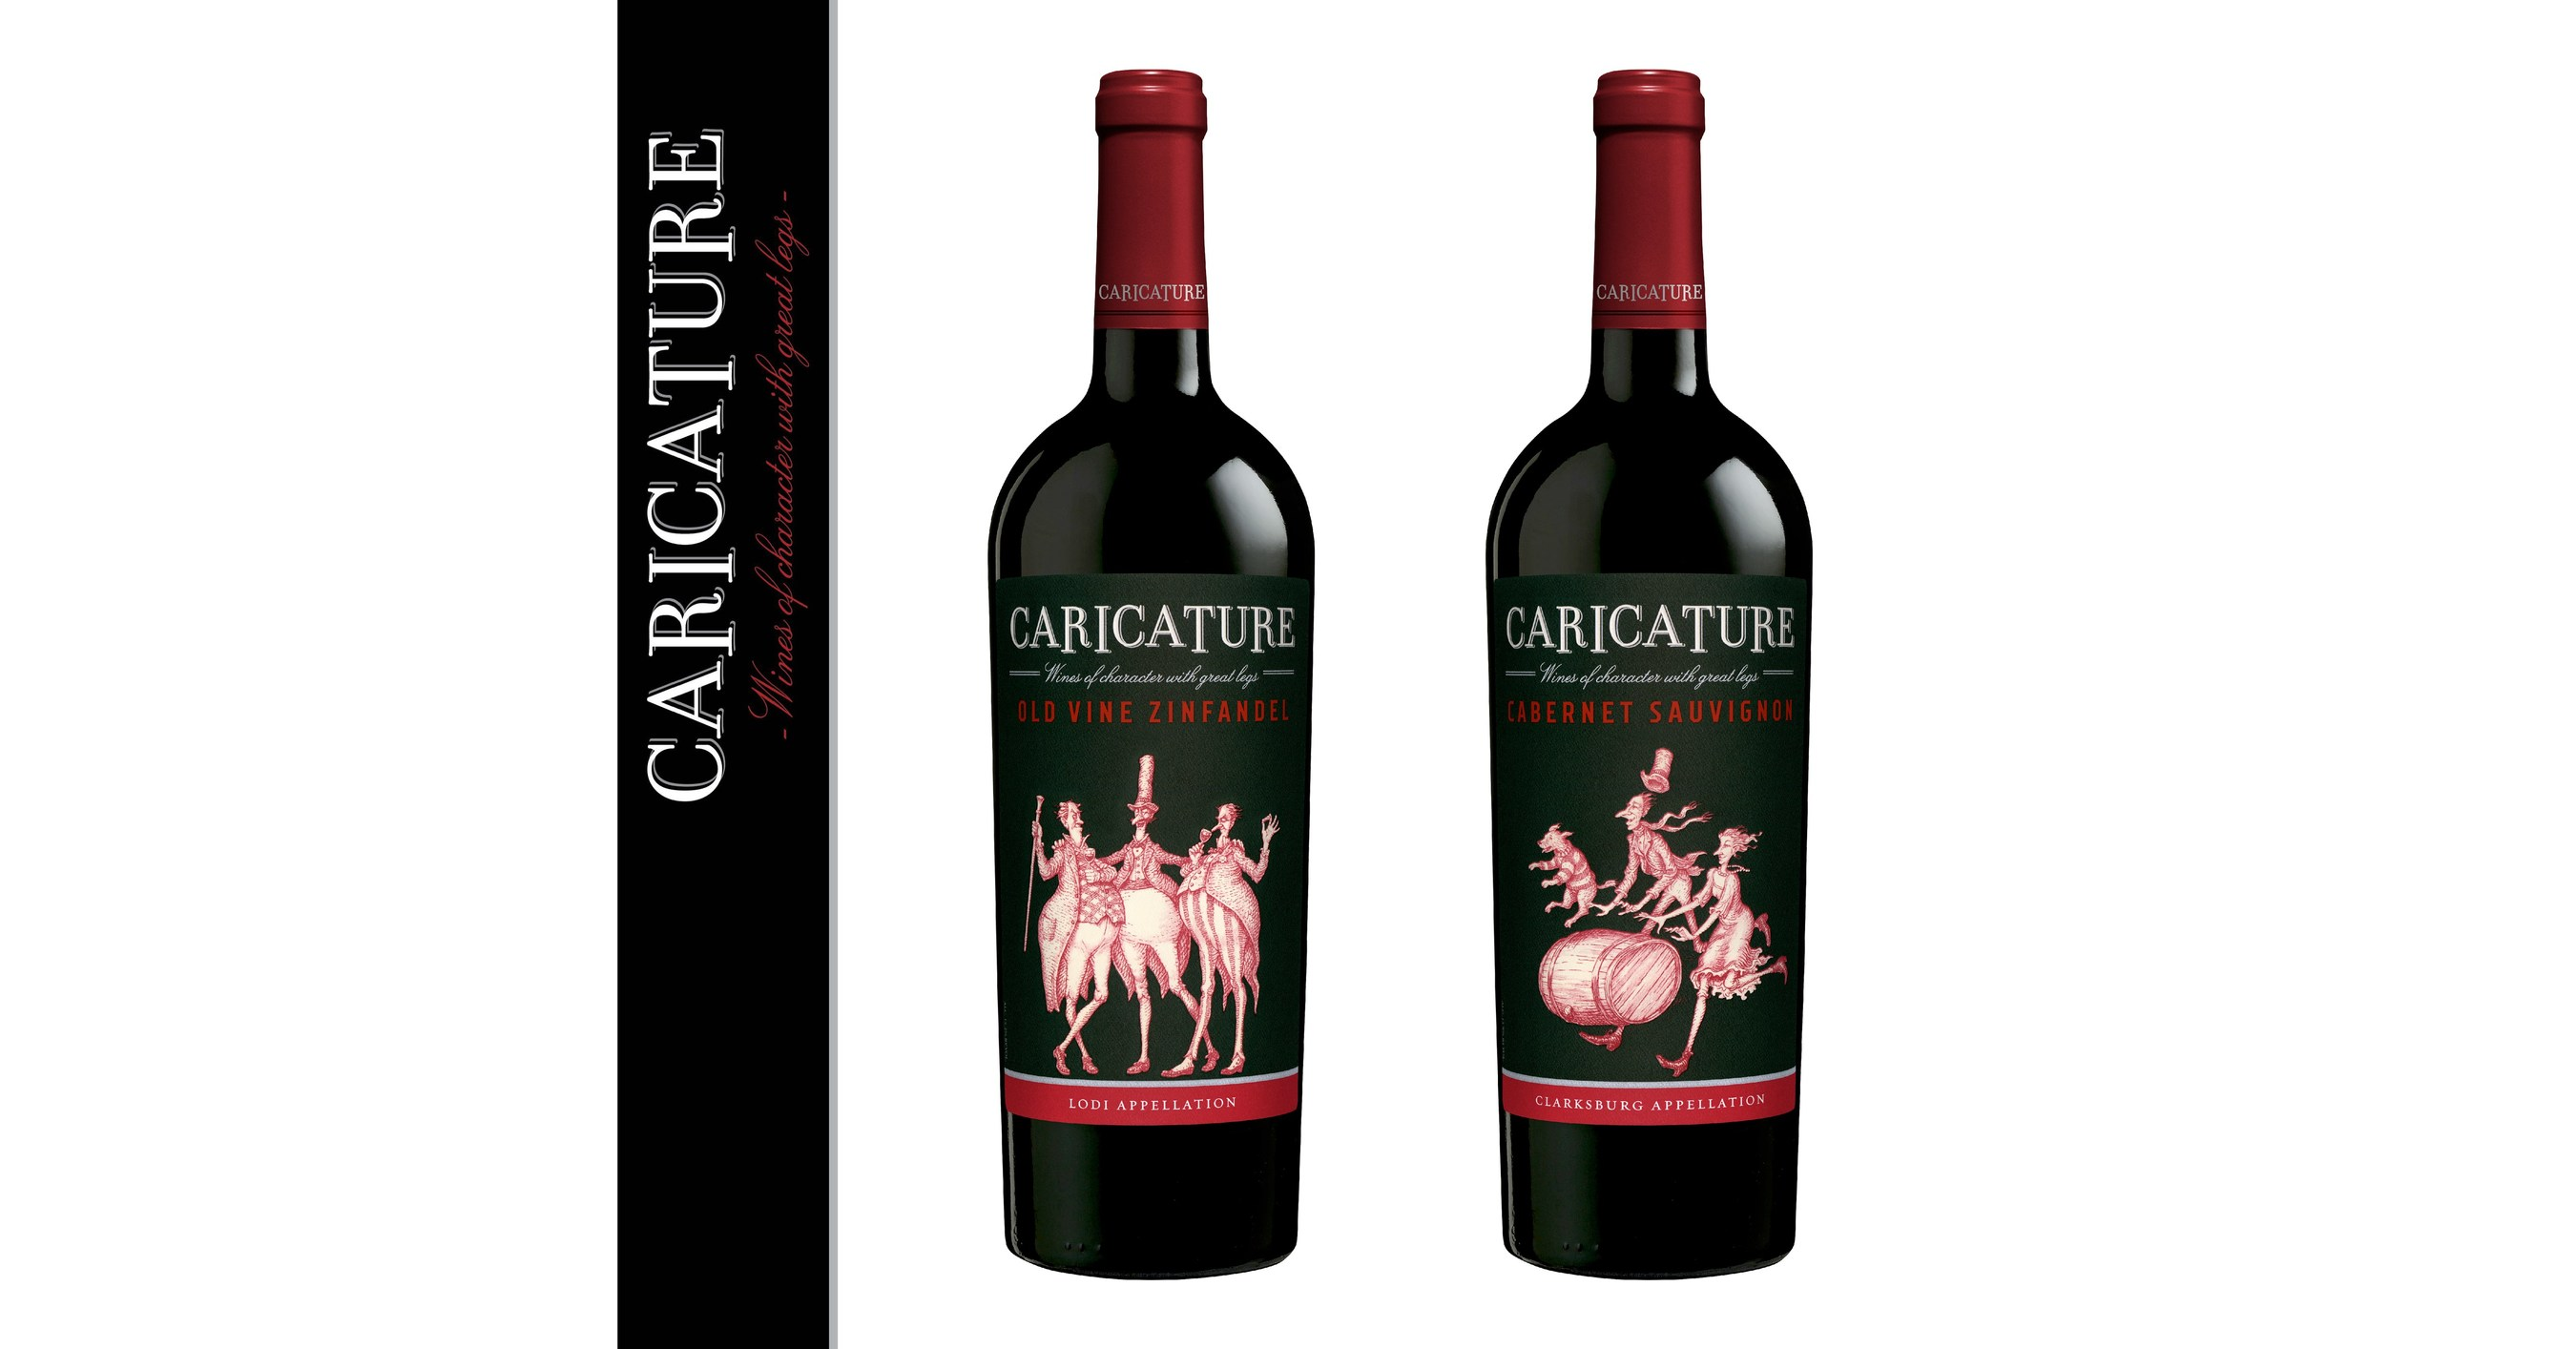 Twins Auto Sales >> LCF Wines Announces New Look for Caricature Wine Brand